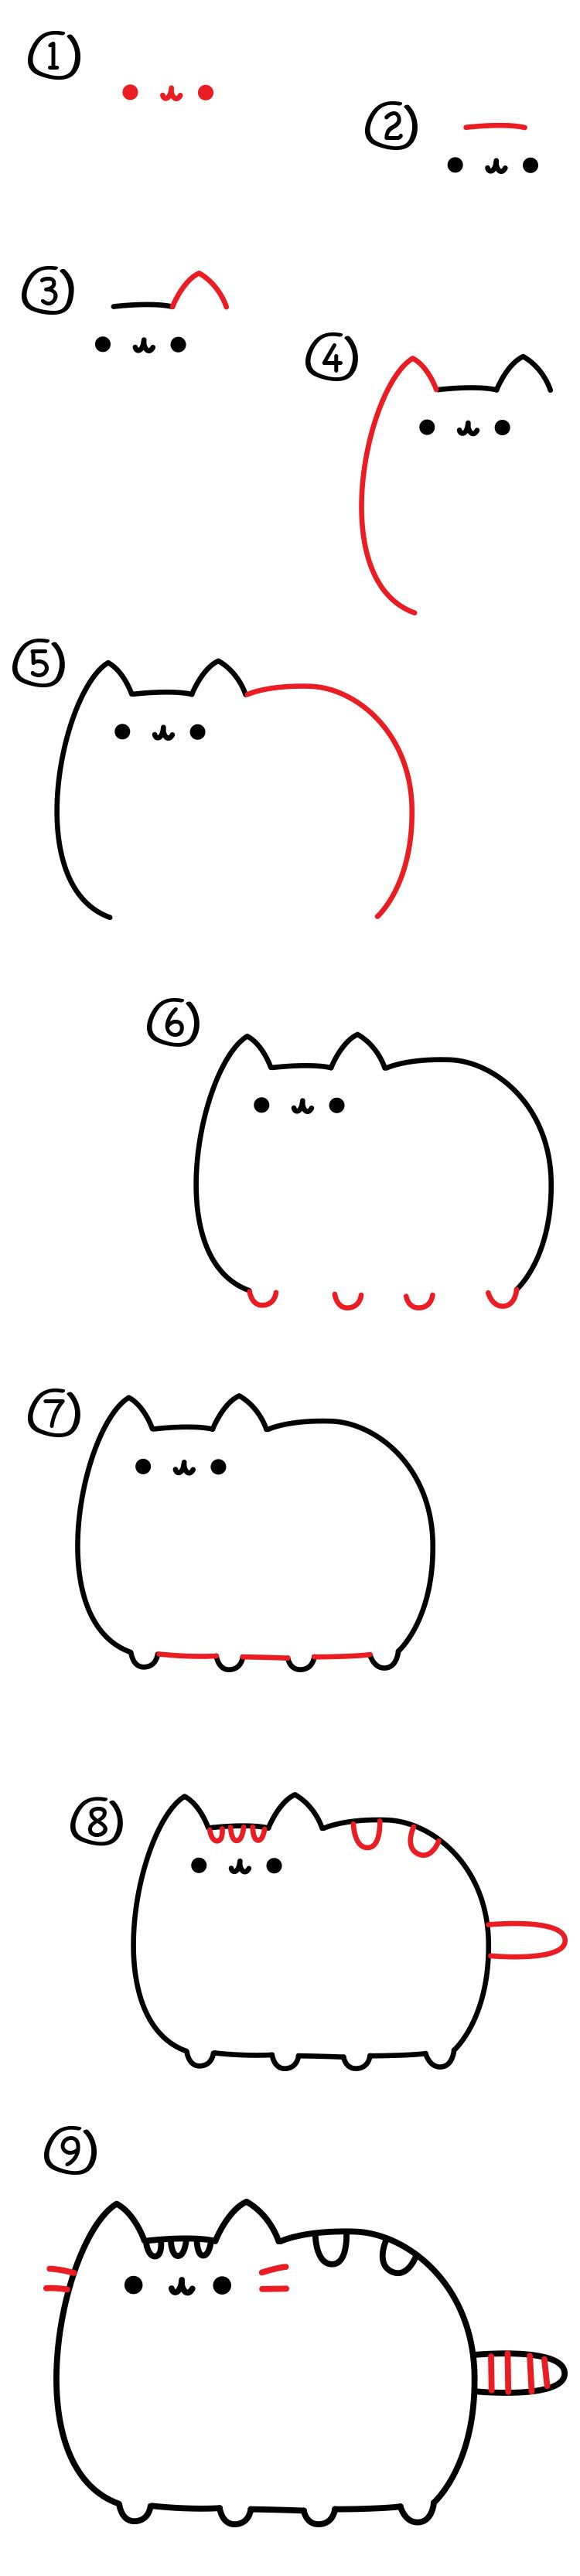 How to draw a kitten in stages